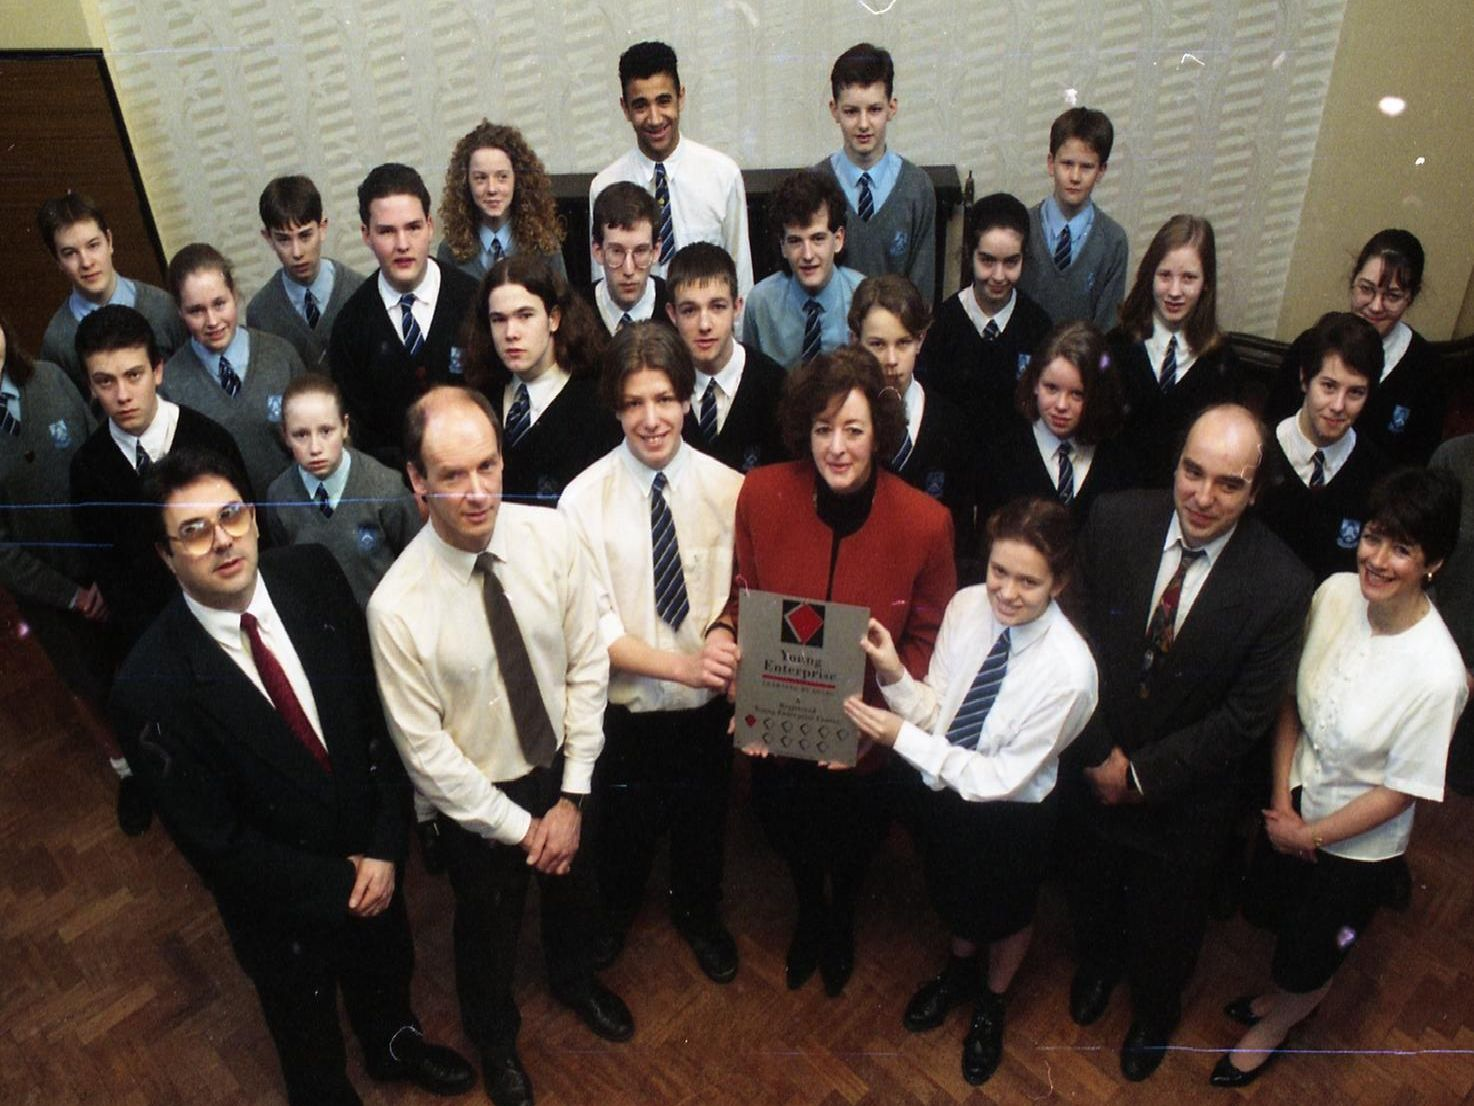 Margaret Malcolm presents a special plaque to Thomas Stadler and Tracey Row of Brownedge St Mary's High School in Bamber Bridge, near Preston, with Phil Murray, Lyell Stott, Martin Walker, Pat Nagle and the Young Enterprise workers. The plaque was presented to reward their efforts during the Young Enterprise scheme